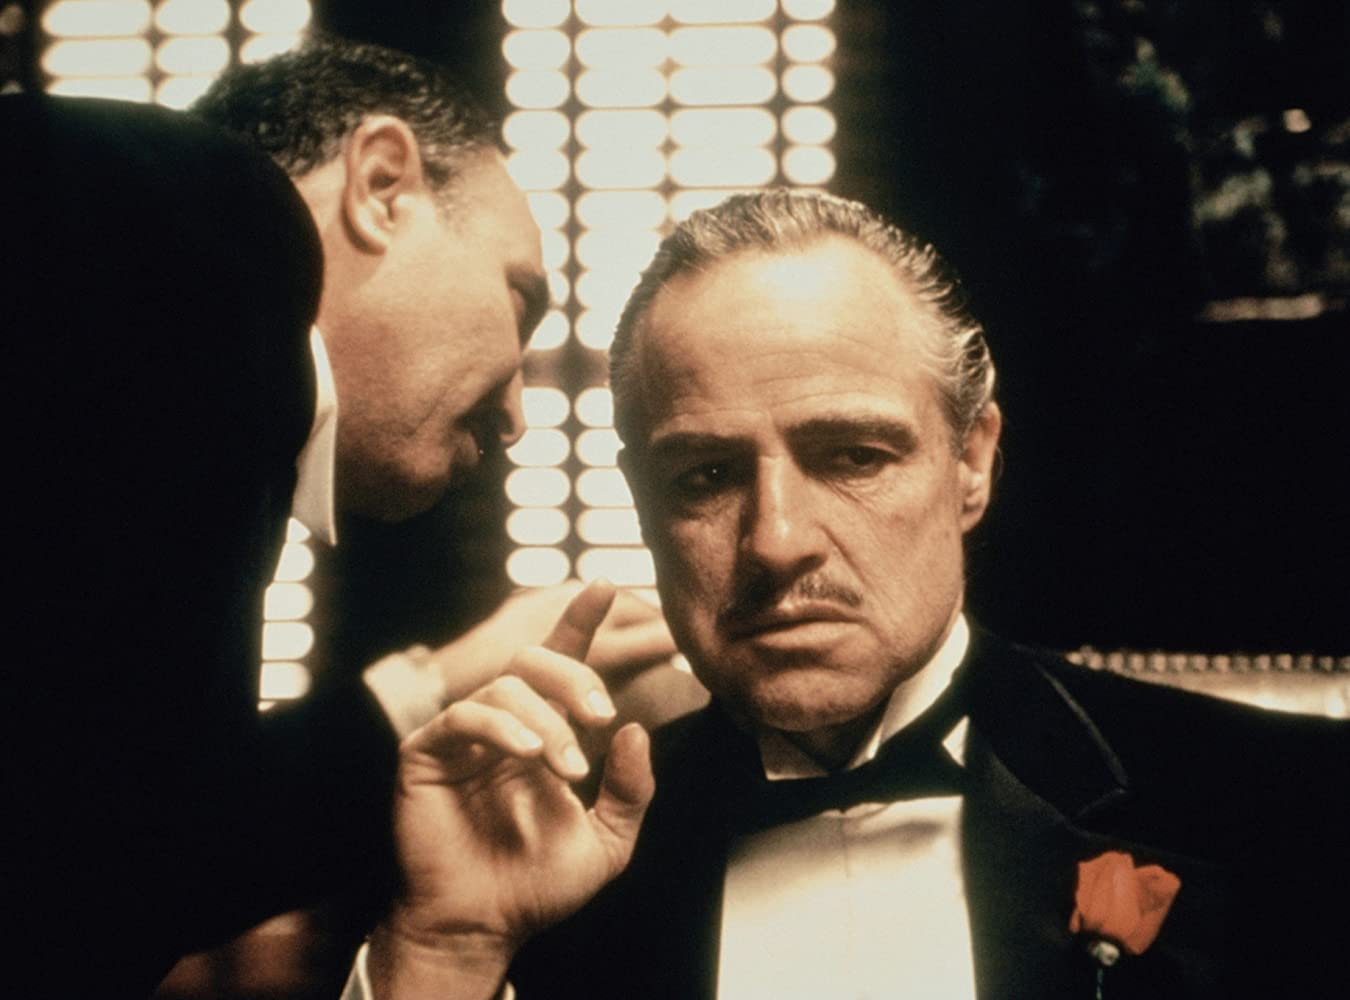 Marlon Brando and Salvatore Corsitto in The Godfather (1972)